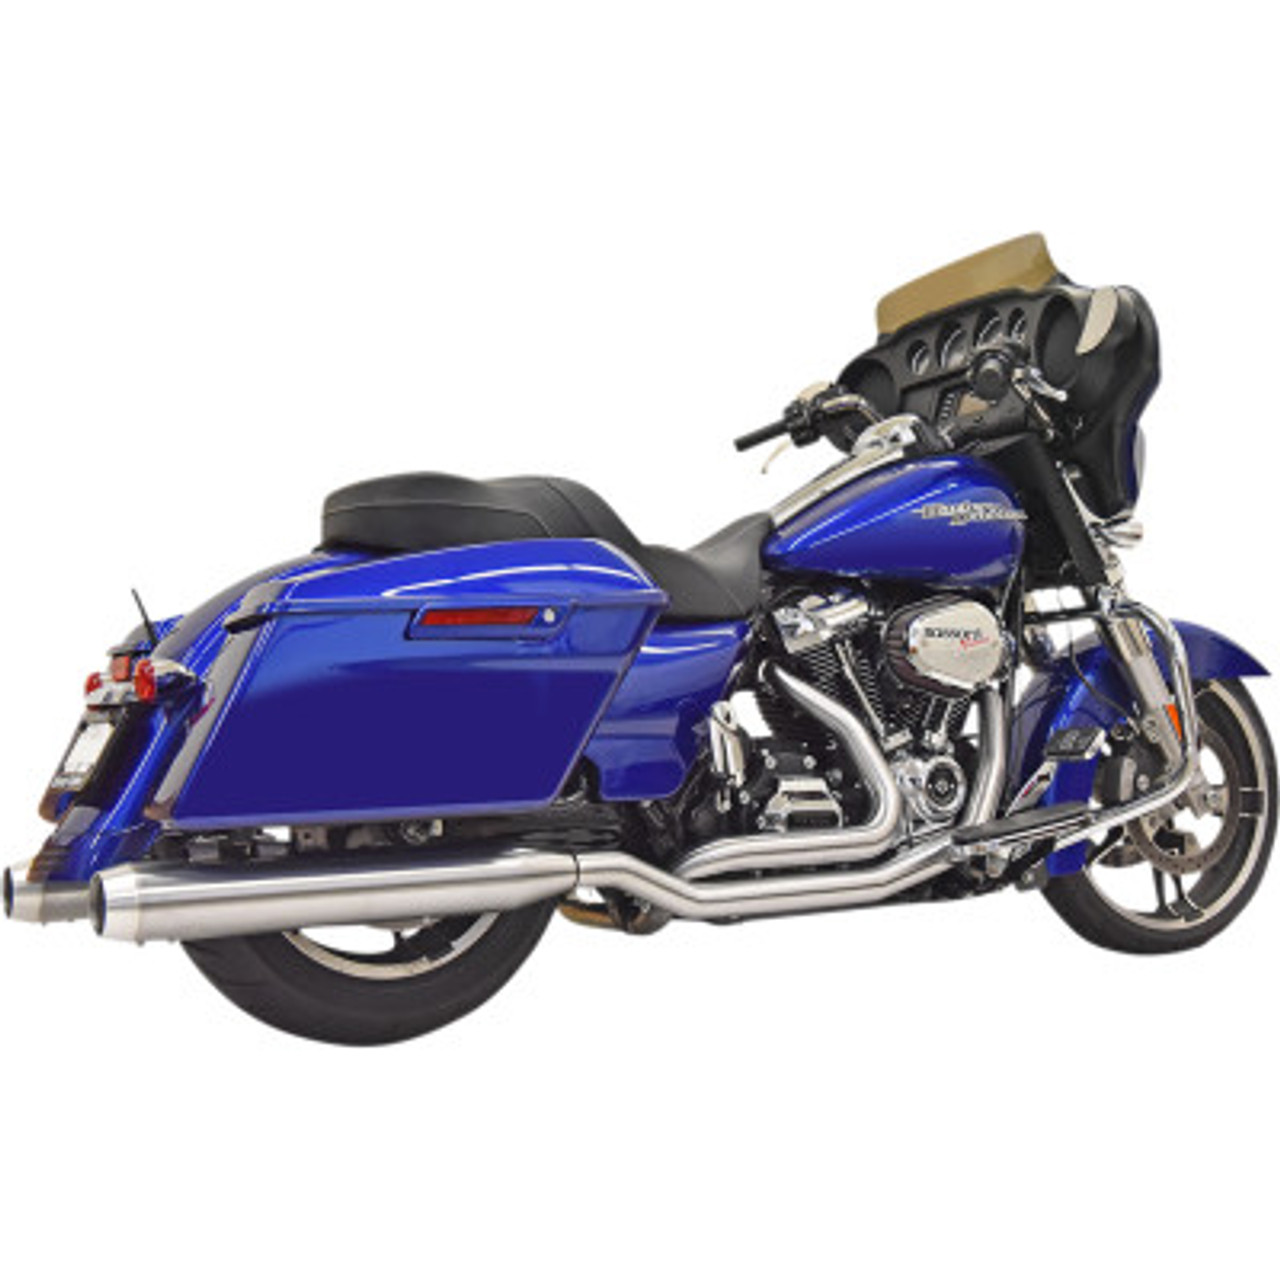 bassani true dual exhuast system stainless steel fits 17 20 touring models